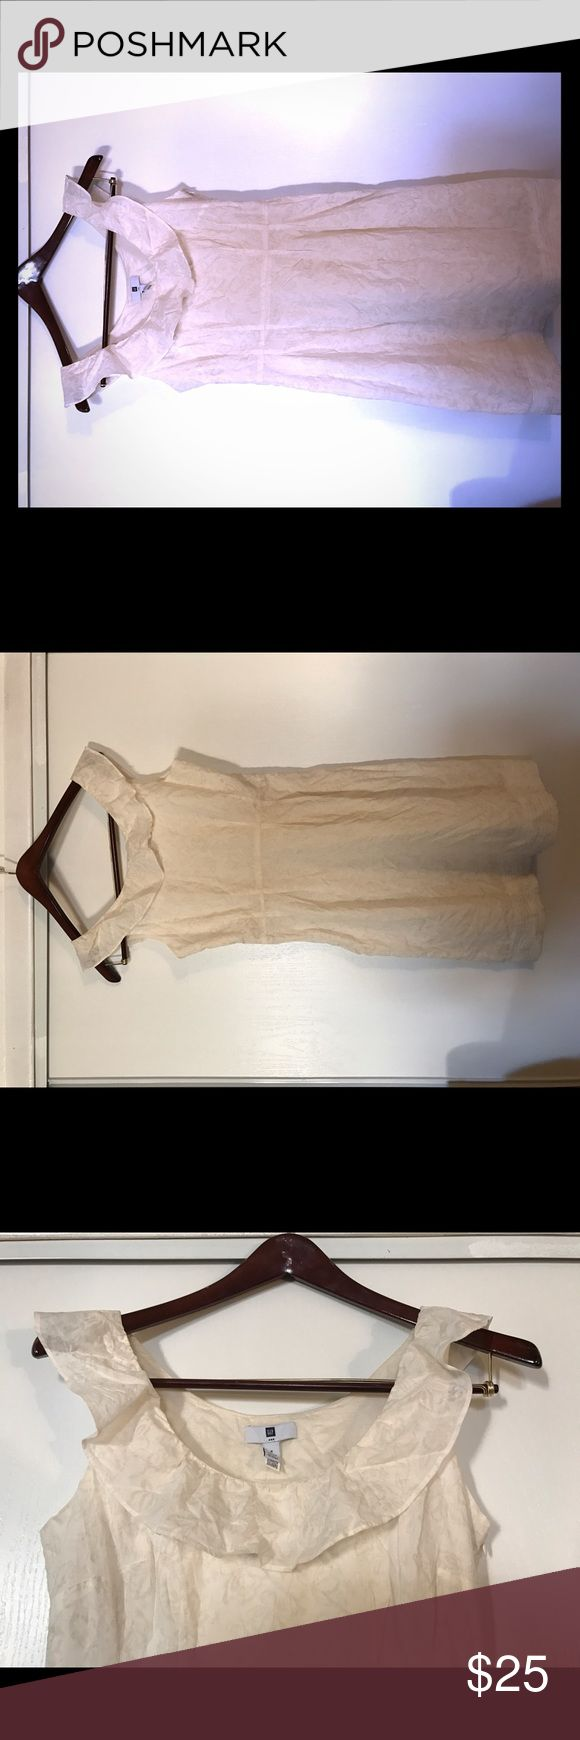 Gap dress. Used, but in good condition. Great for upcoming spring season. GAP Dresses